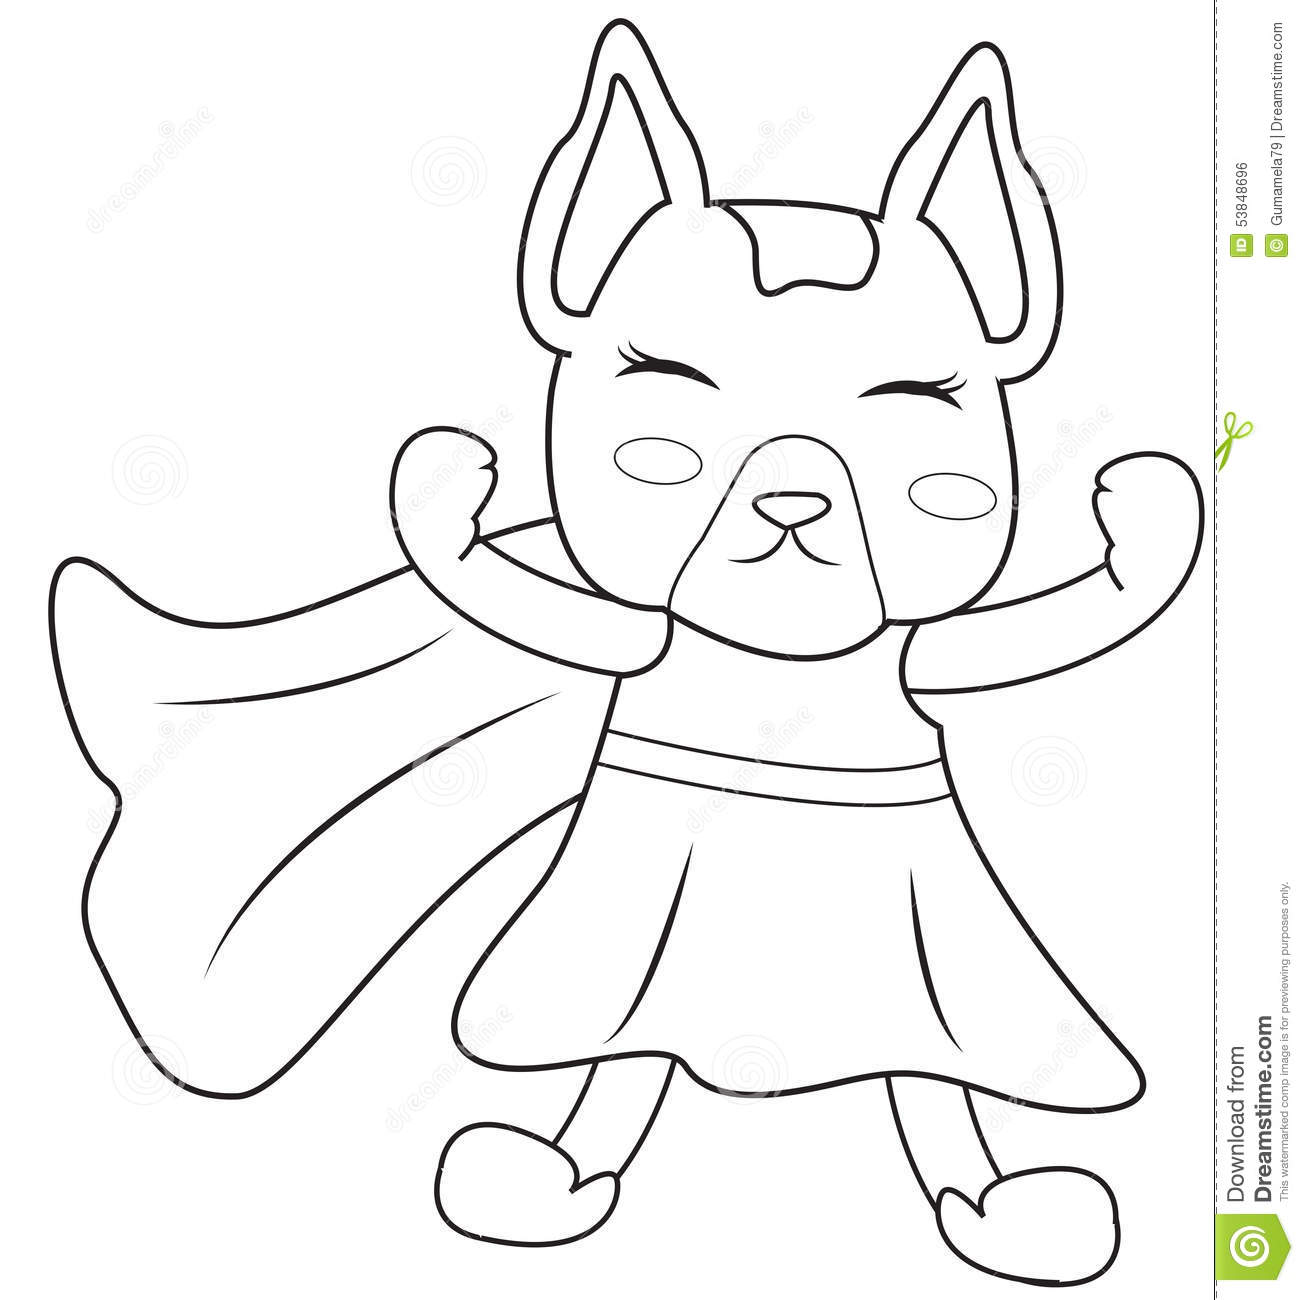 Coloring book pages superheroes - Superhero Dog Coloring Page